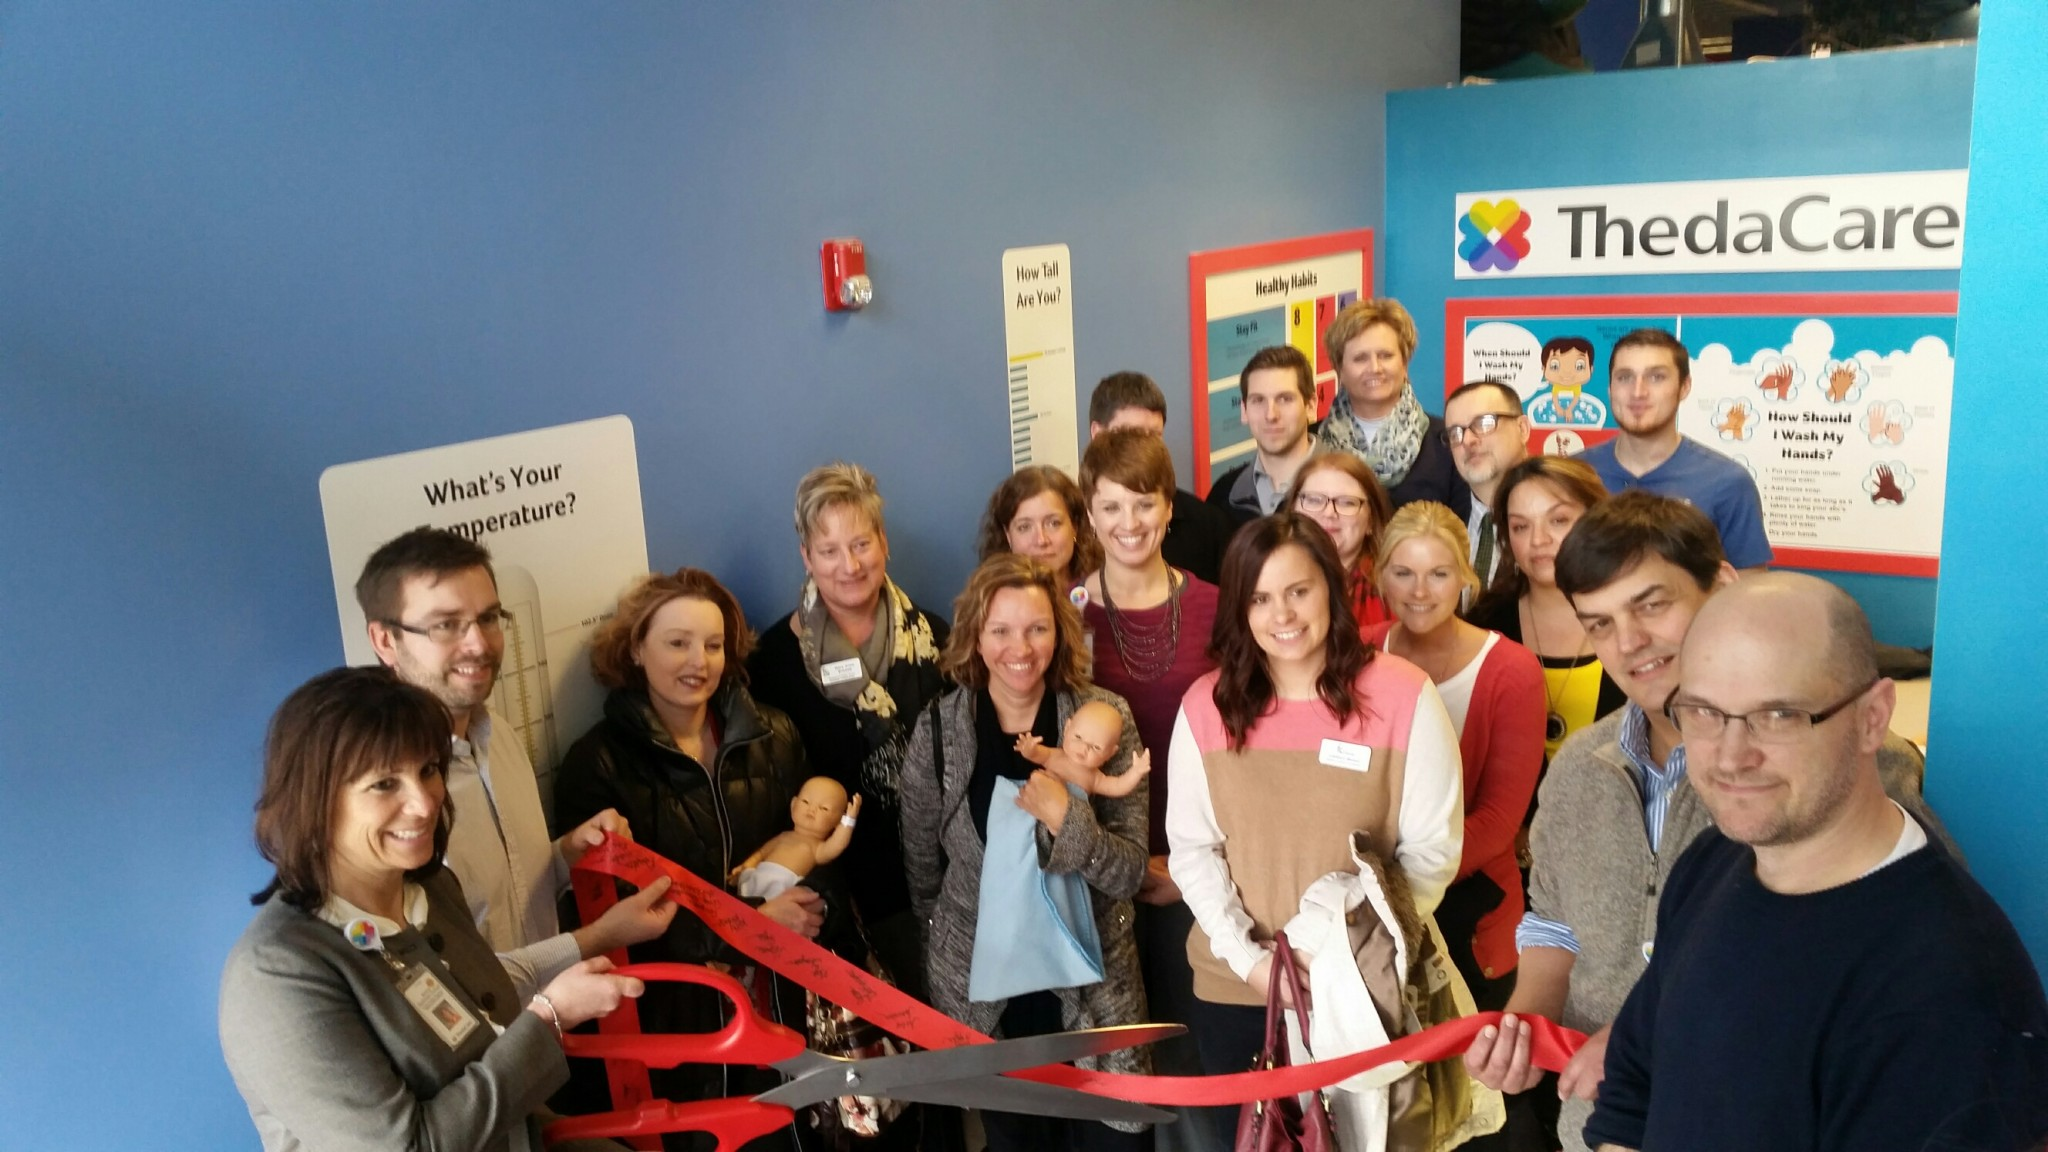 A grand opening for the remodeled Doll Hospital exhibit at The Building for Kids Children's Museum in Appleton took place Wednesday afternoon. Photo by Brooke Van Roy